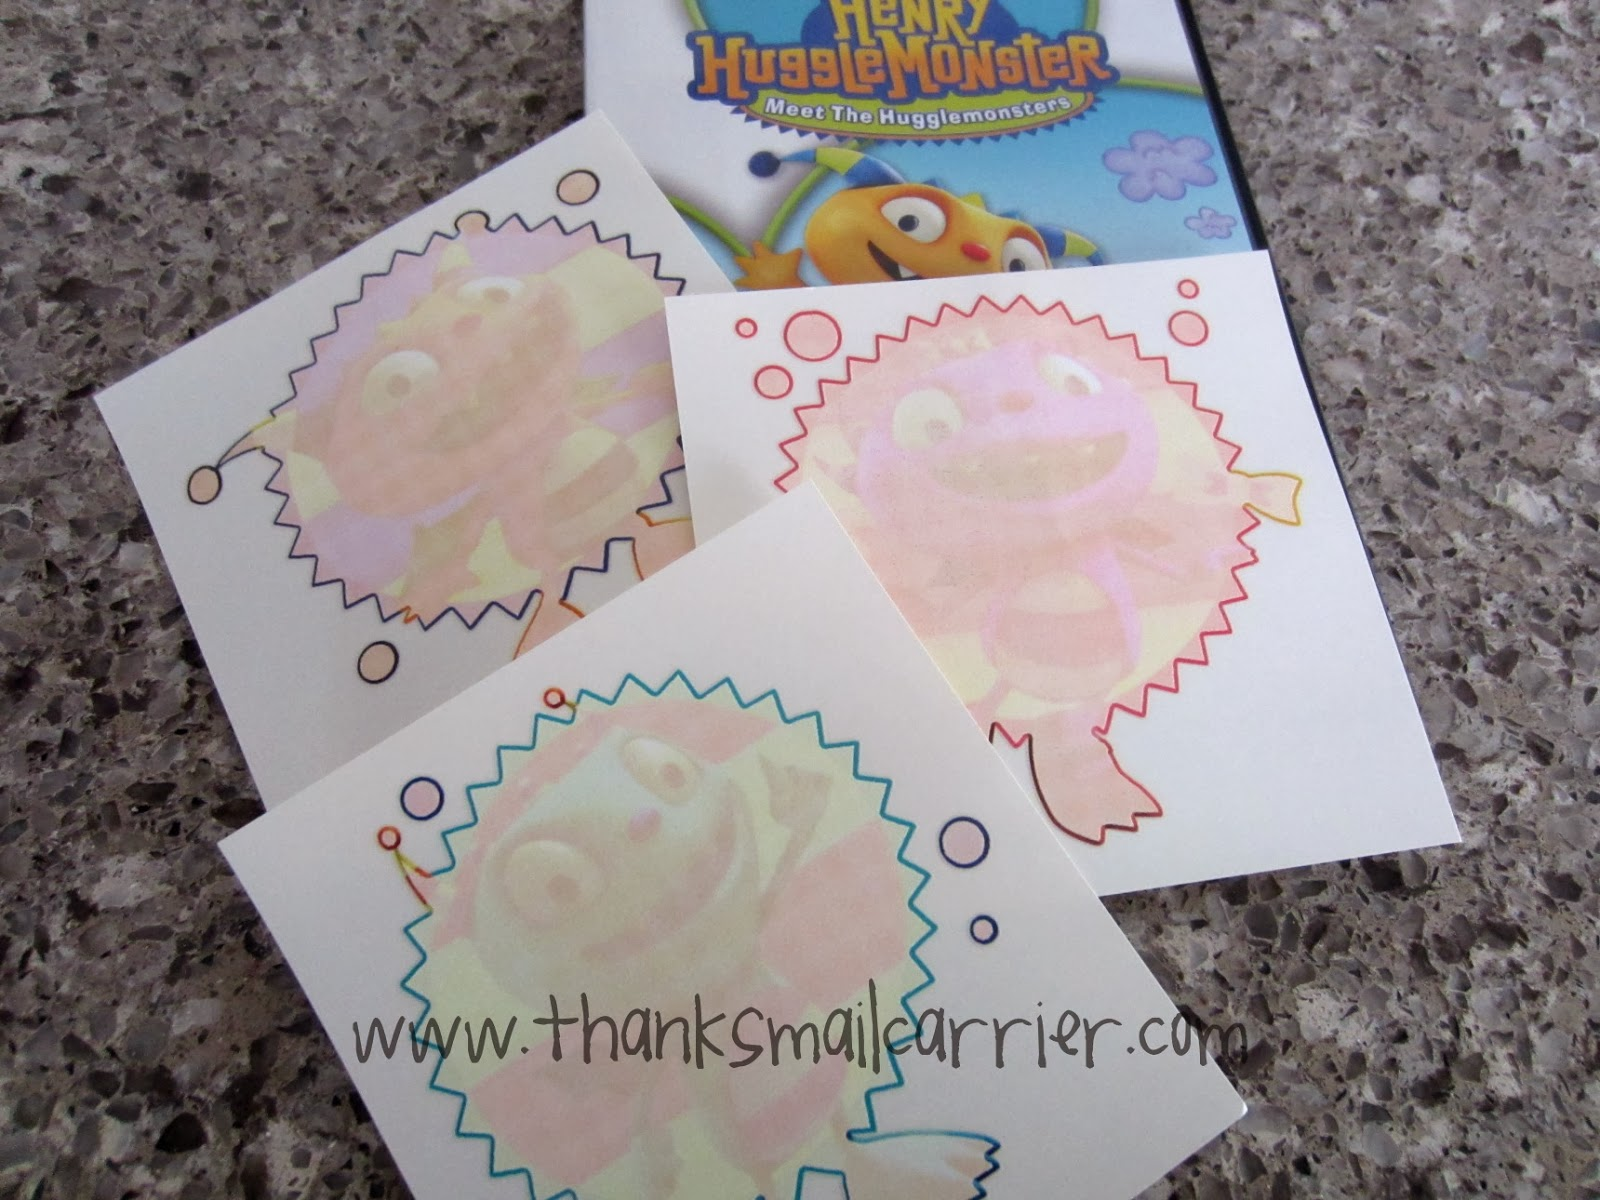 Henry Hugglemonster decals